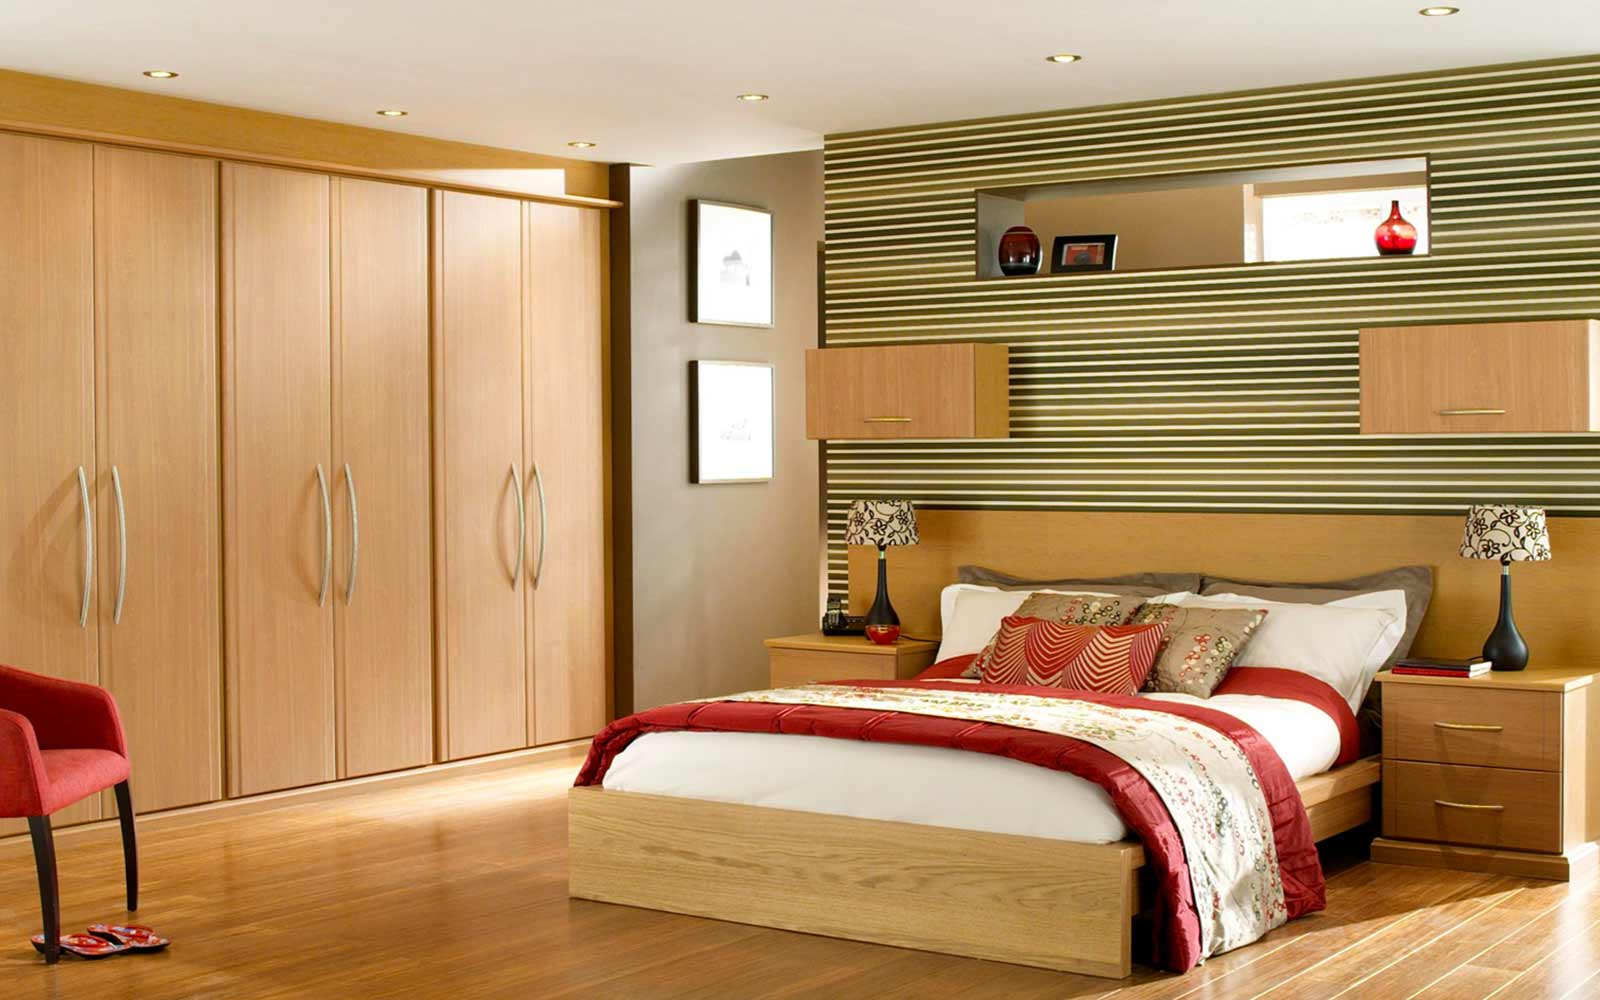 35 images of wardrobe designs for bedrooms for Wardrobe interior designs catalogue